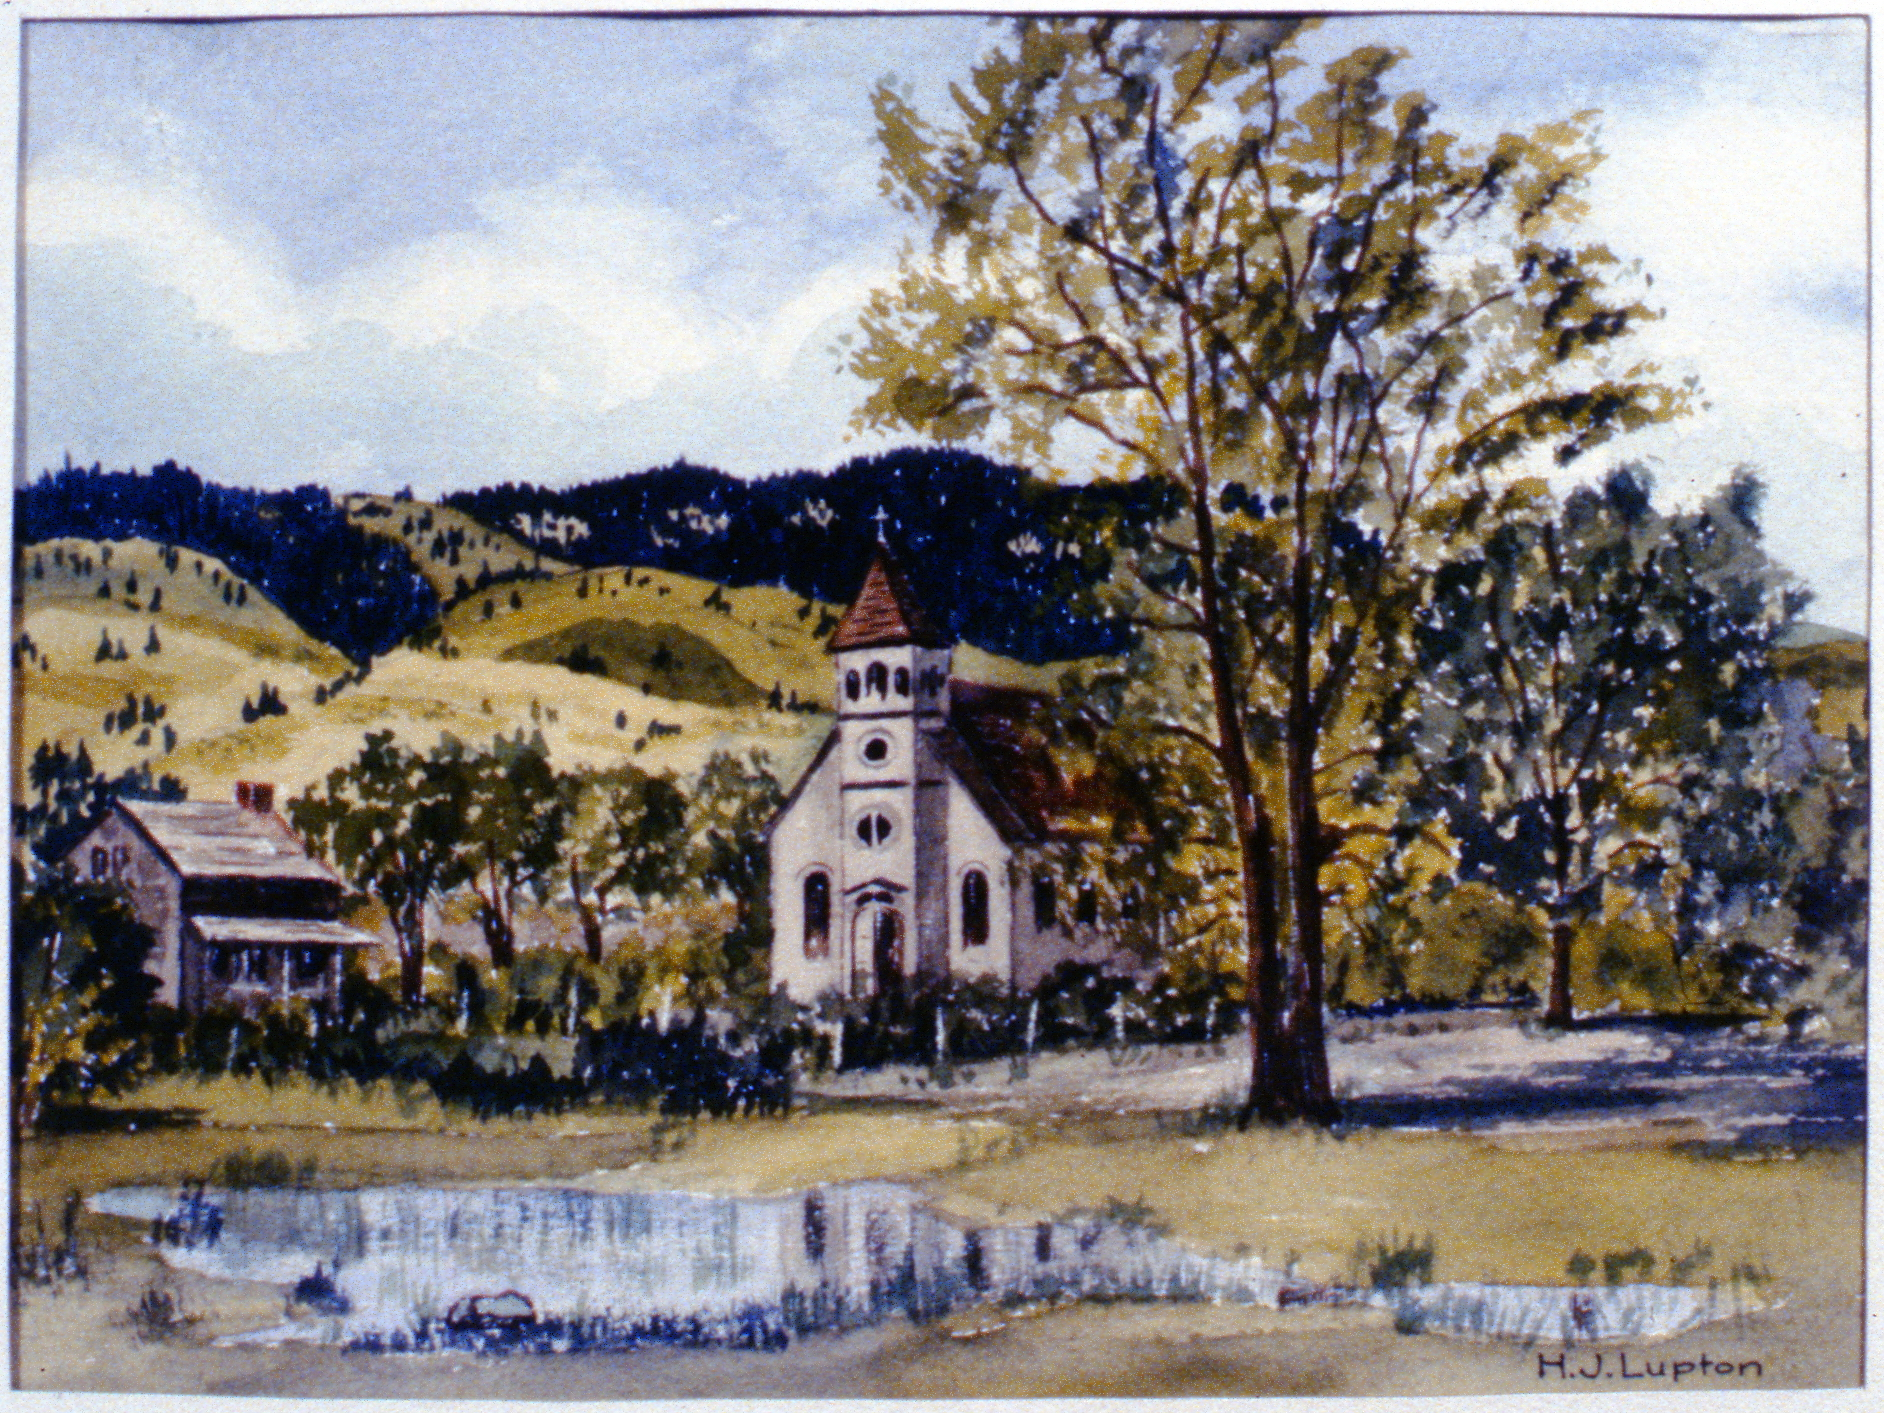 Untitled (Penticton Indian Band Reserve) , H.J. Lupton, watercolour on paper, 1985.02.01. Gift of the artist.